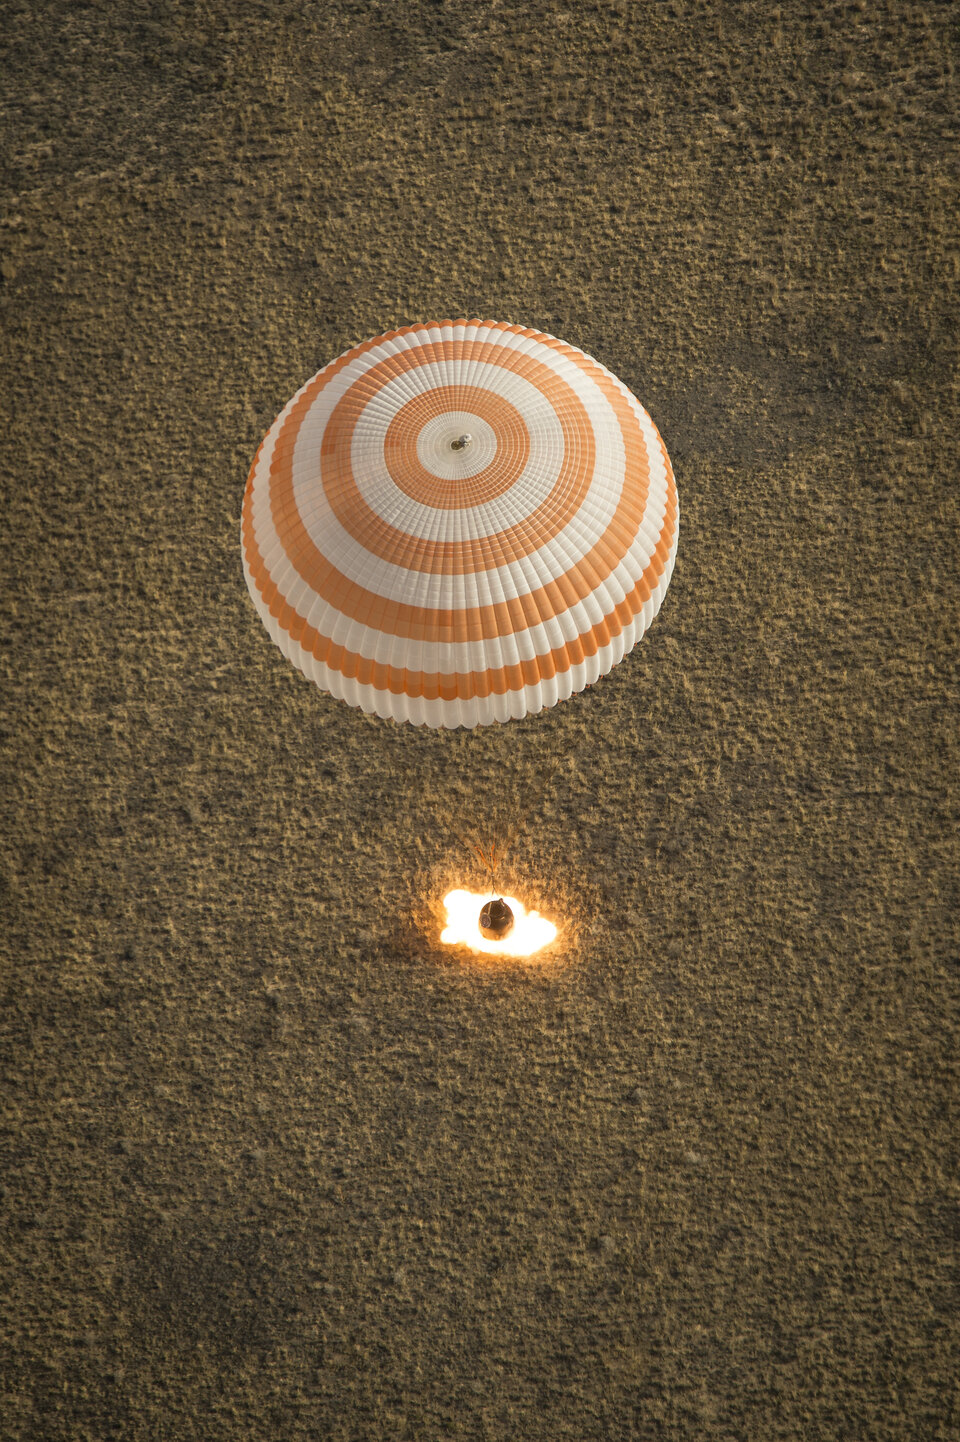 Previous Soyuz landing